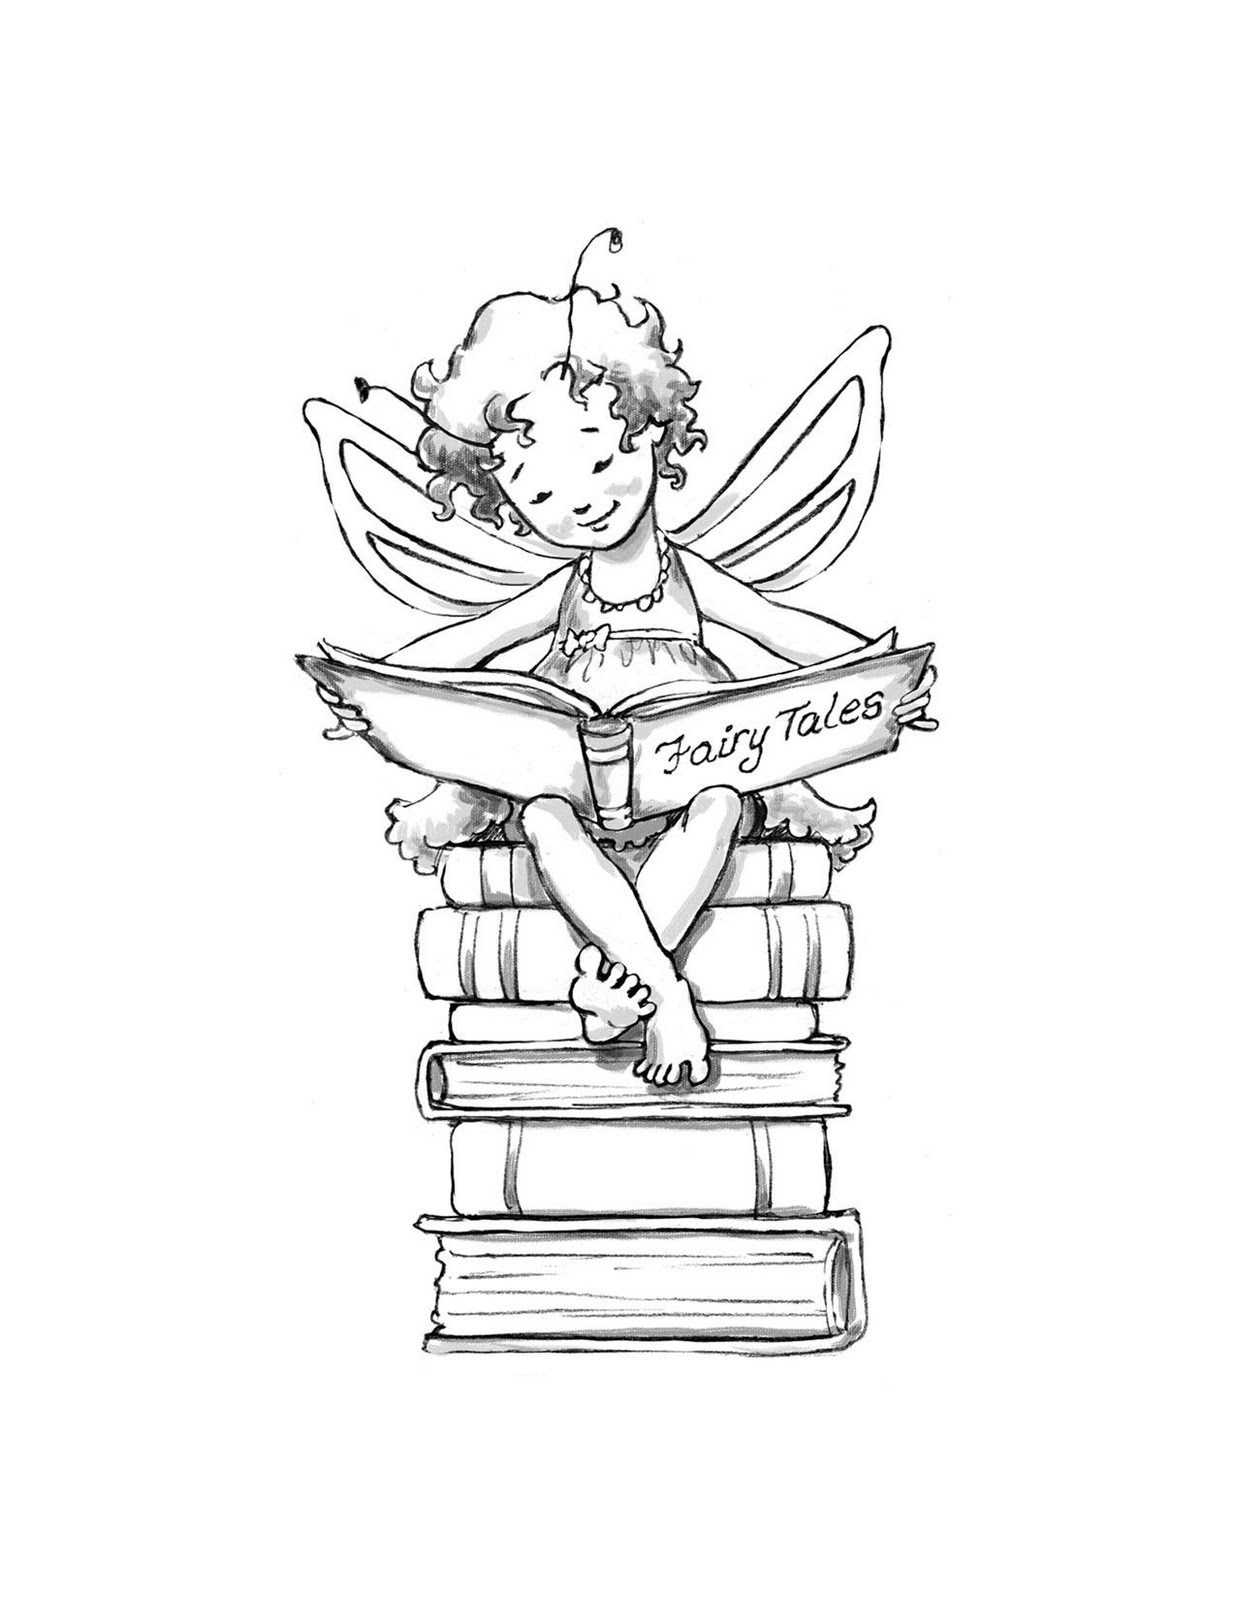 La Salle Chiclana English Corner Fairy Tale Quest 2eso